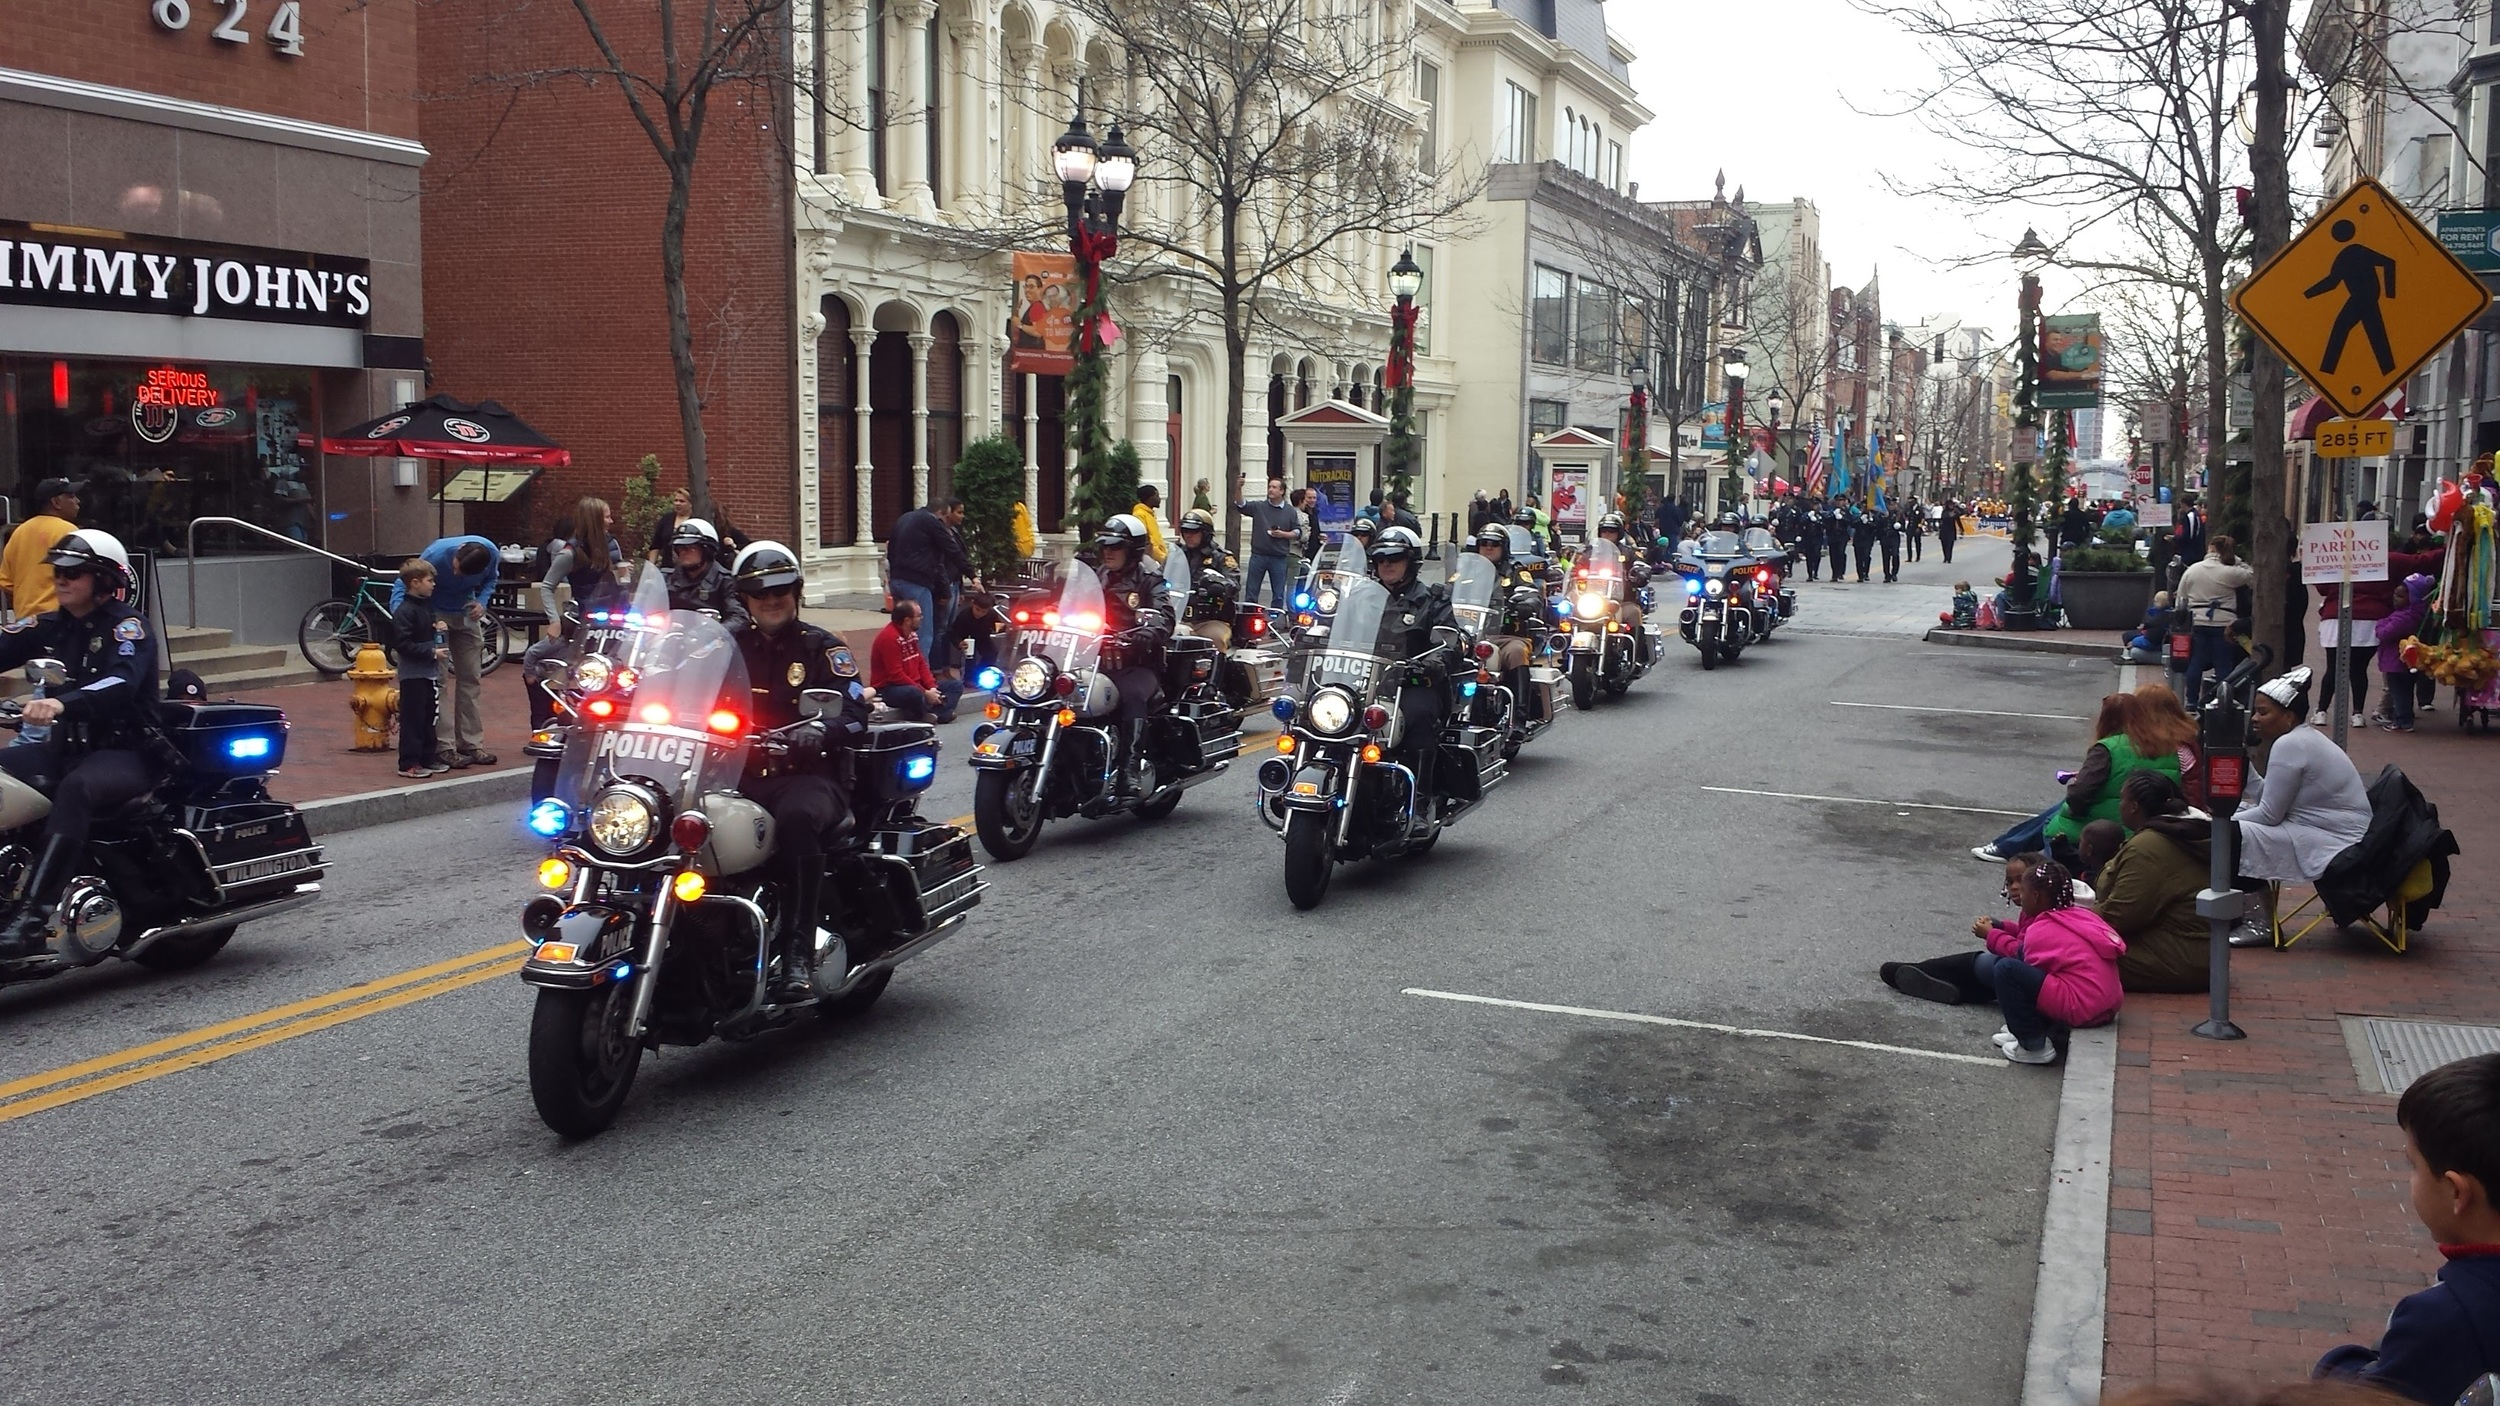 Parade Nov 28, 2015 police on motorcycles